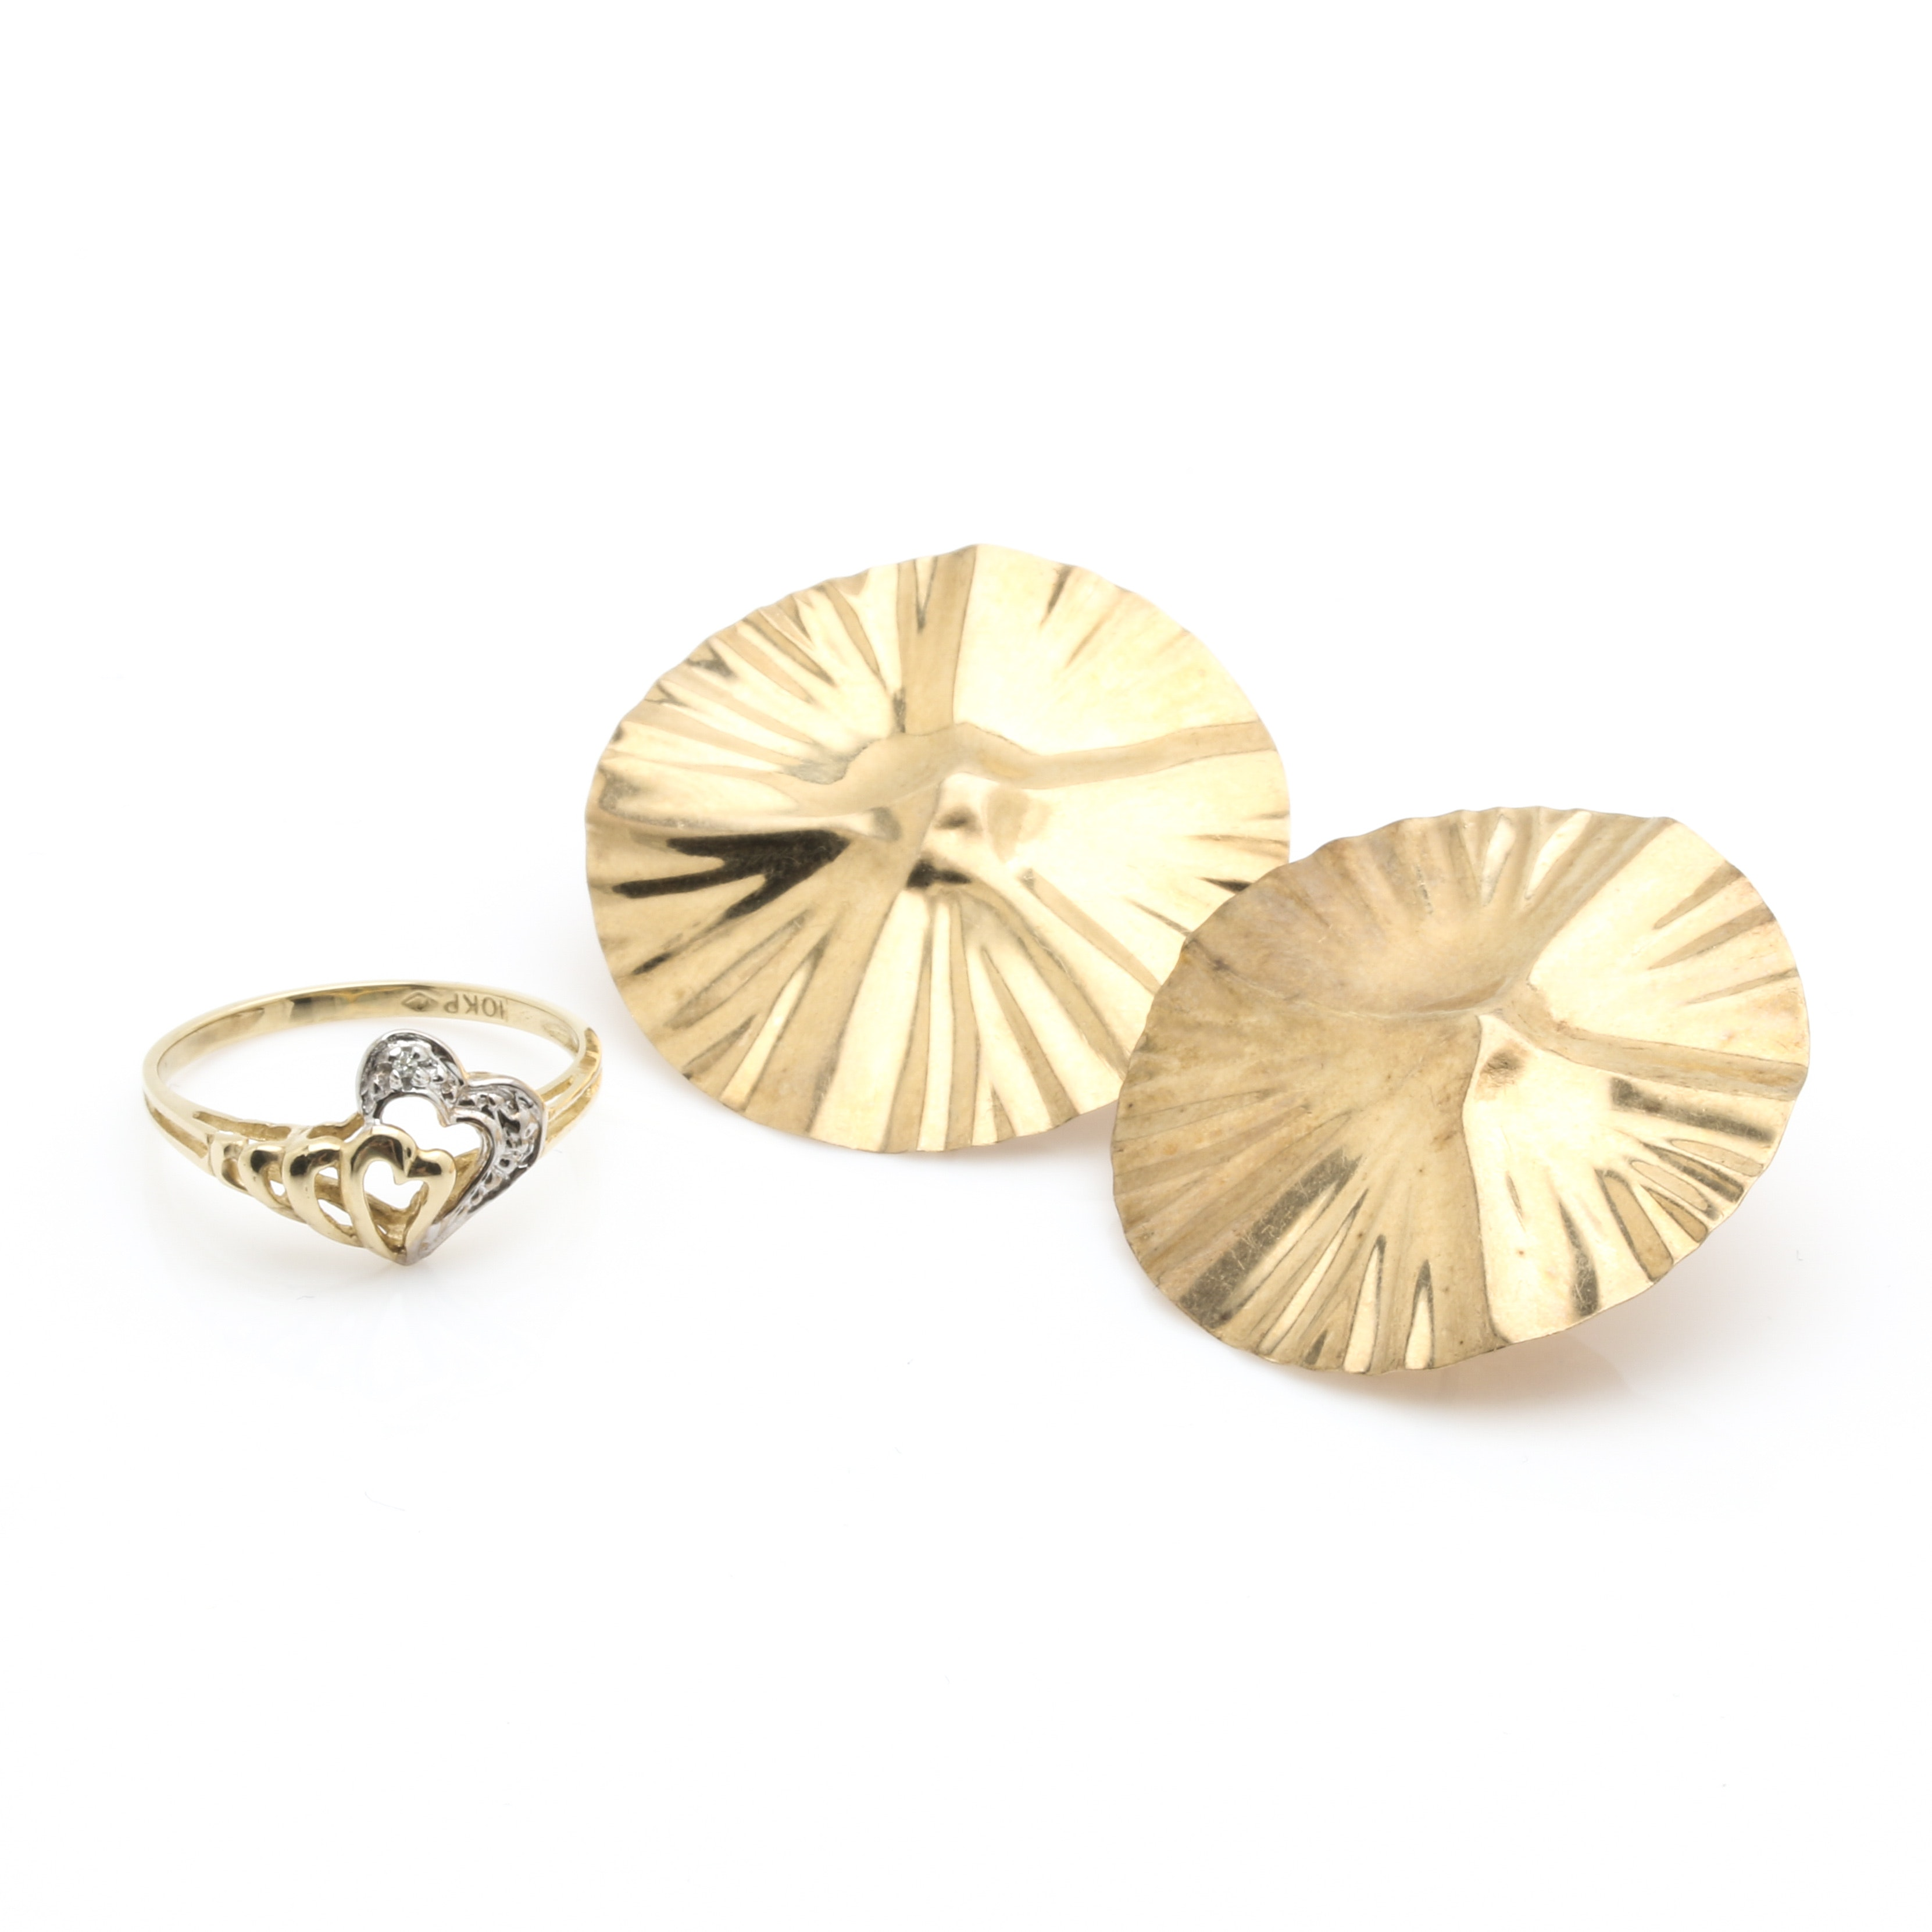 Assortment of 14K Yellow Gold Stud Earrings and 10K Yellow Gold Diamond Ring